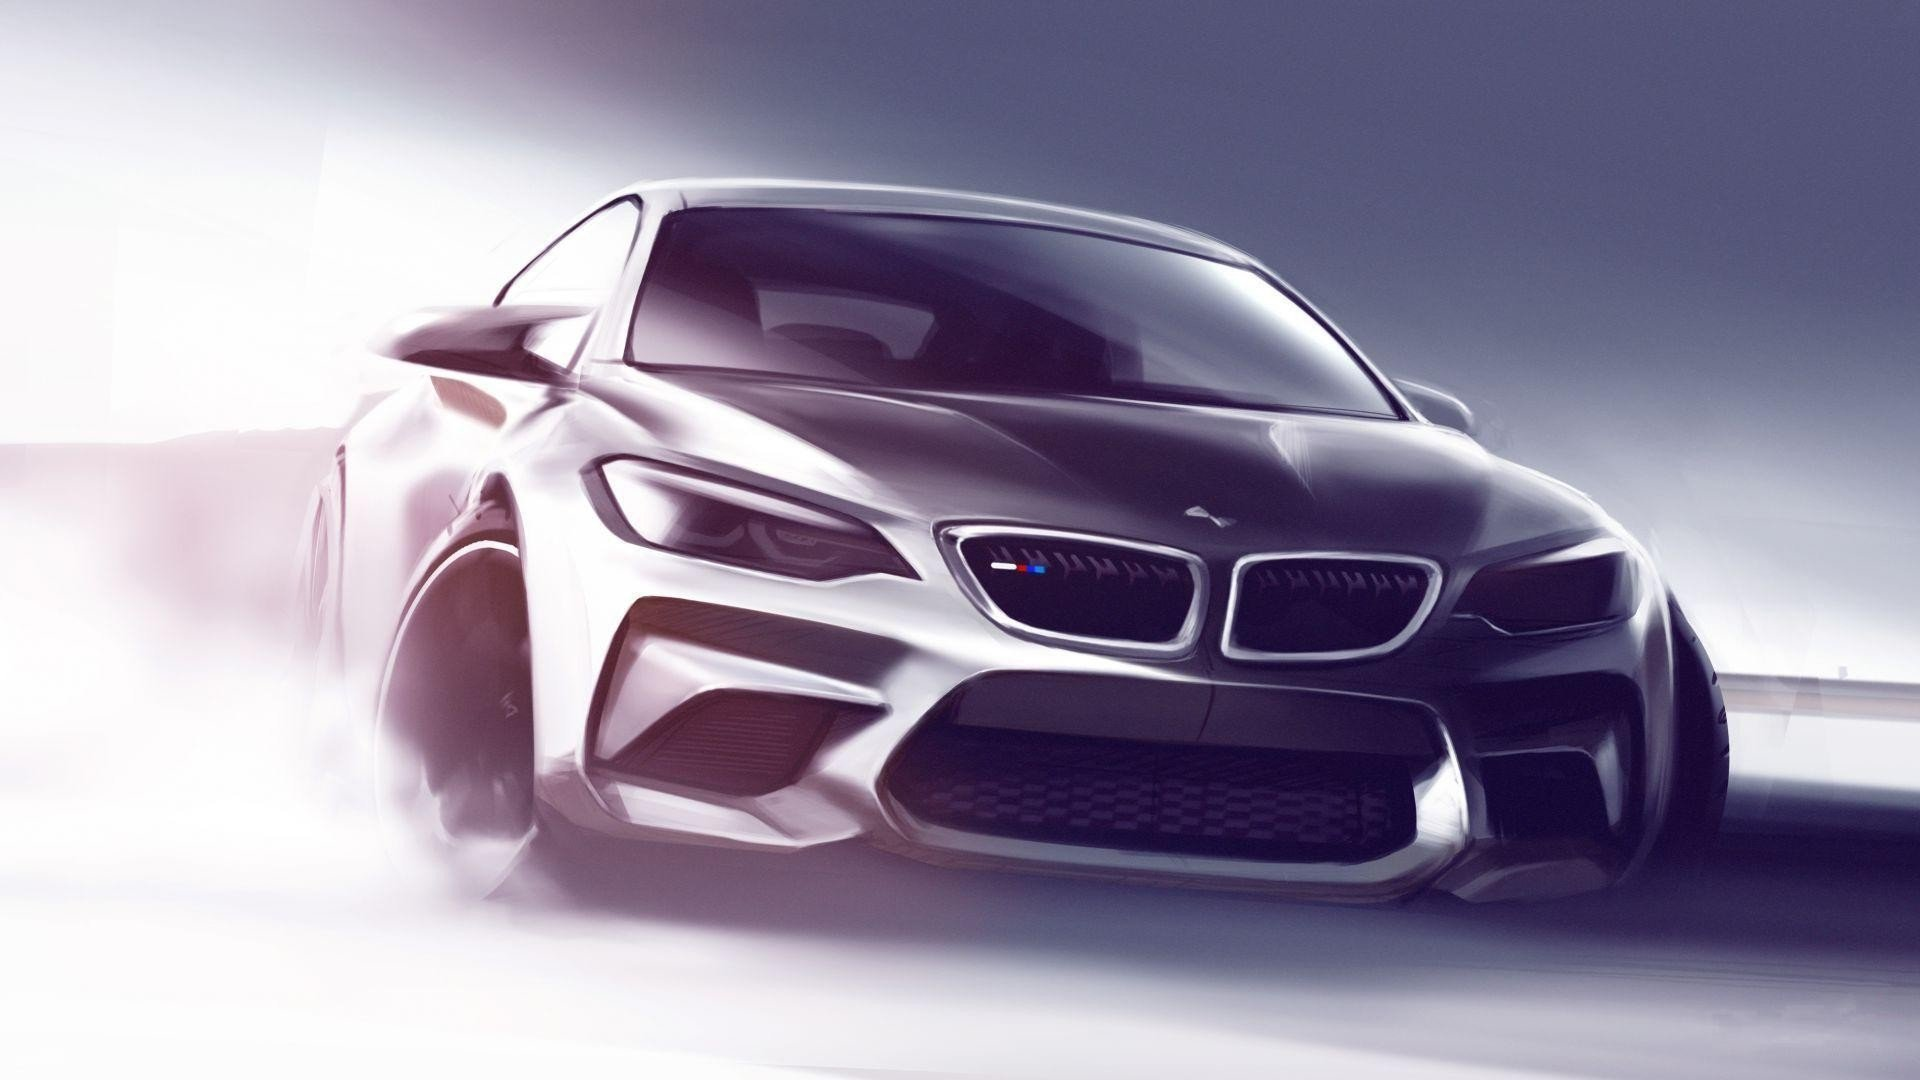 Latest Bmw Concept Cars Car Drawing Hd Wallpapers Desktop Free Download